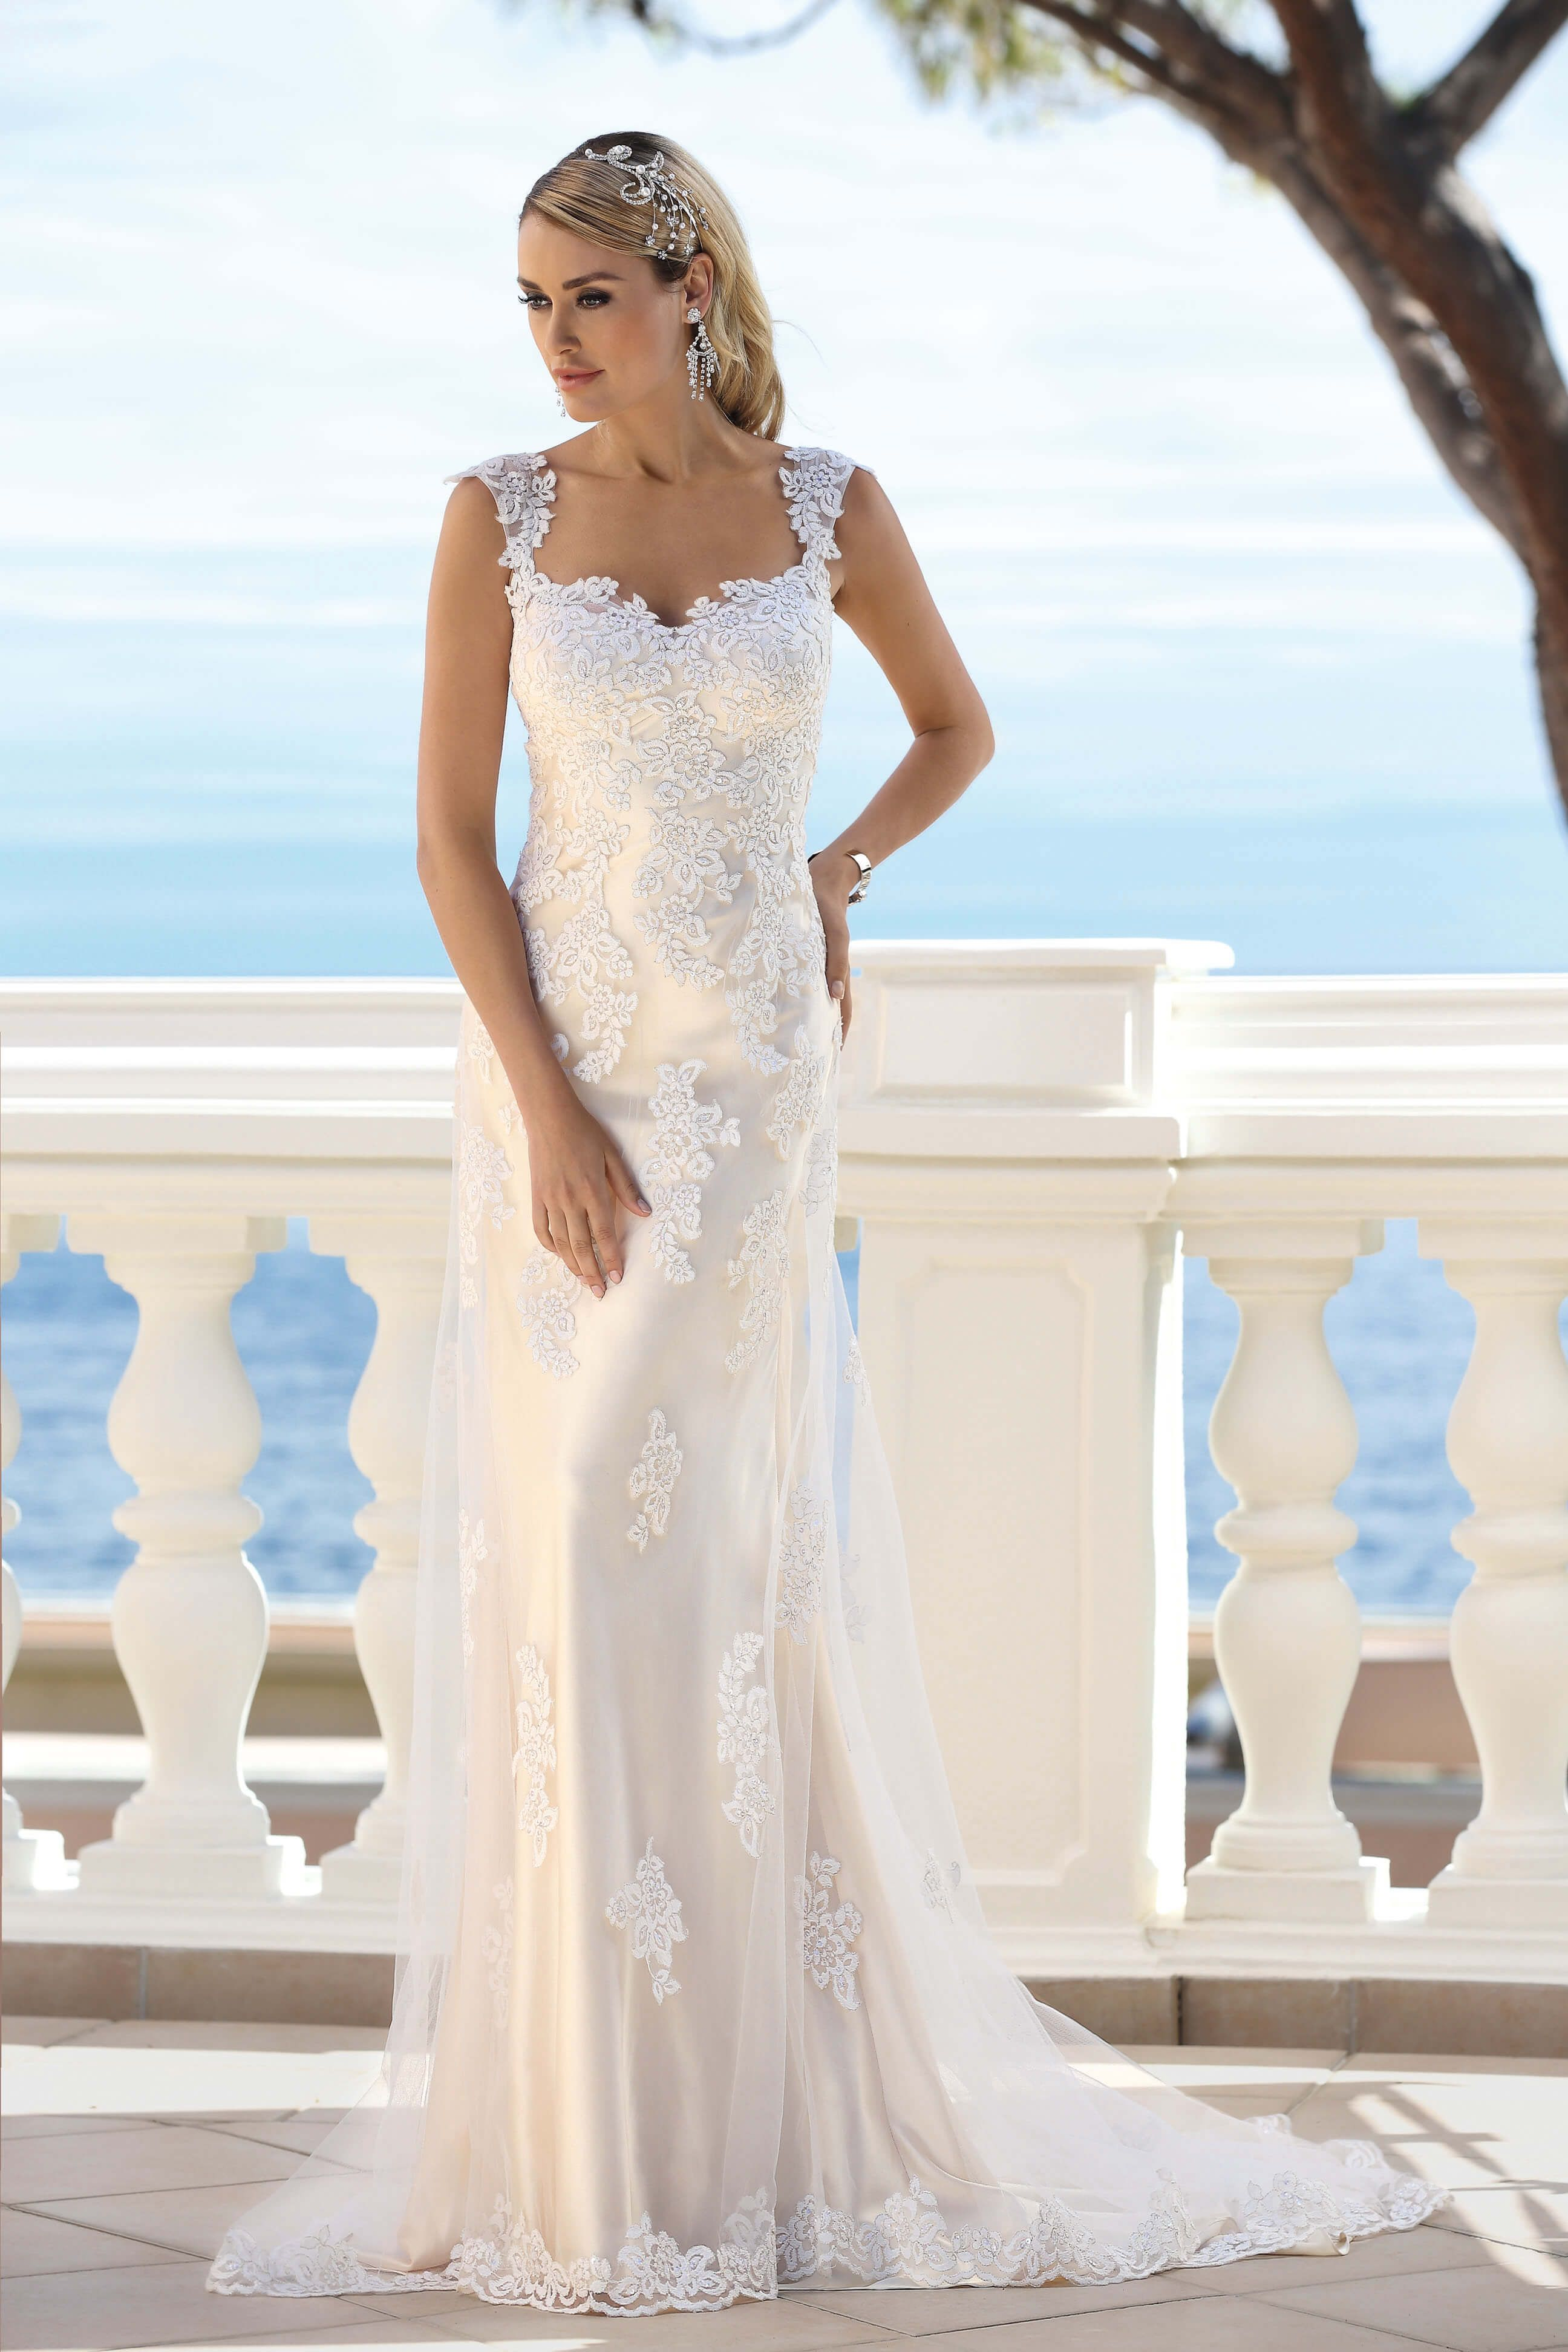 We Are One Of The Leading Bridal Wedding Dress Shop Anns Bridal